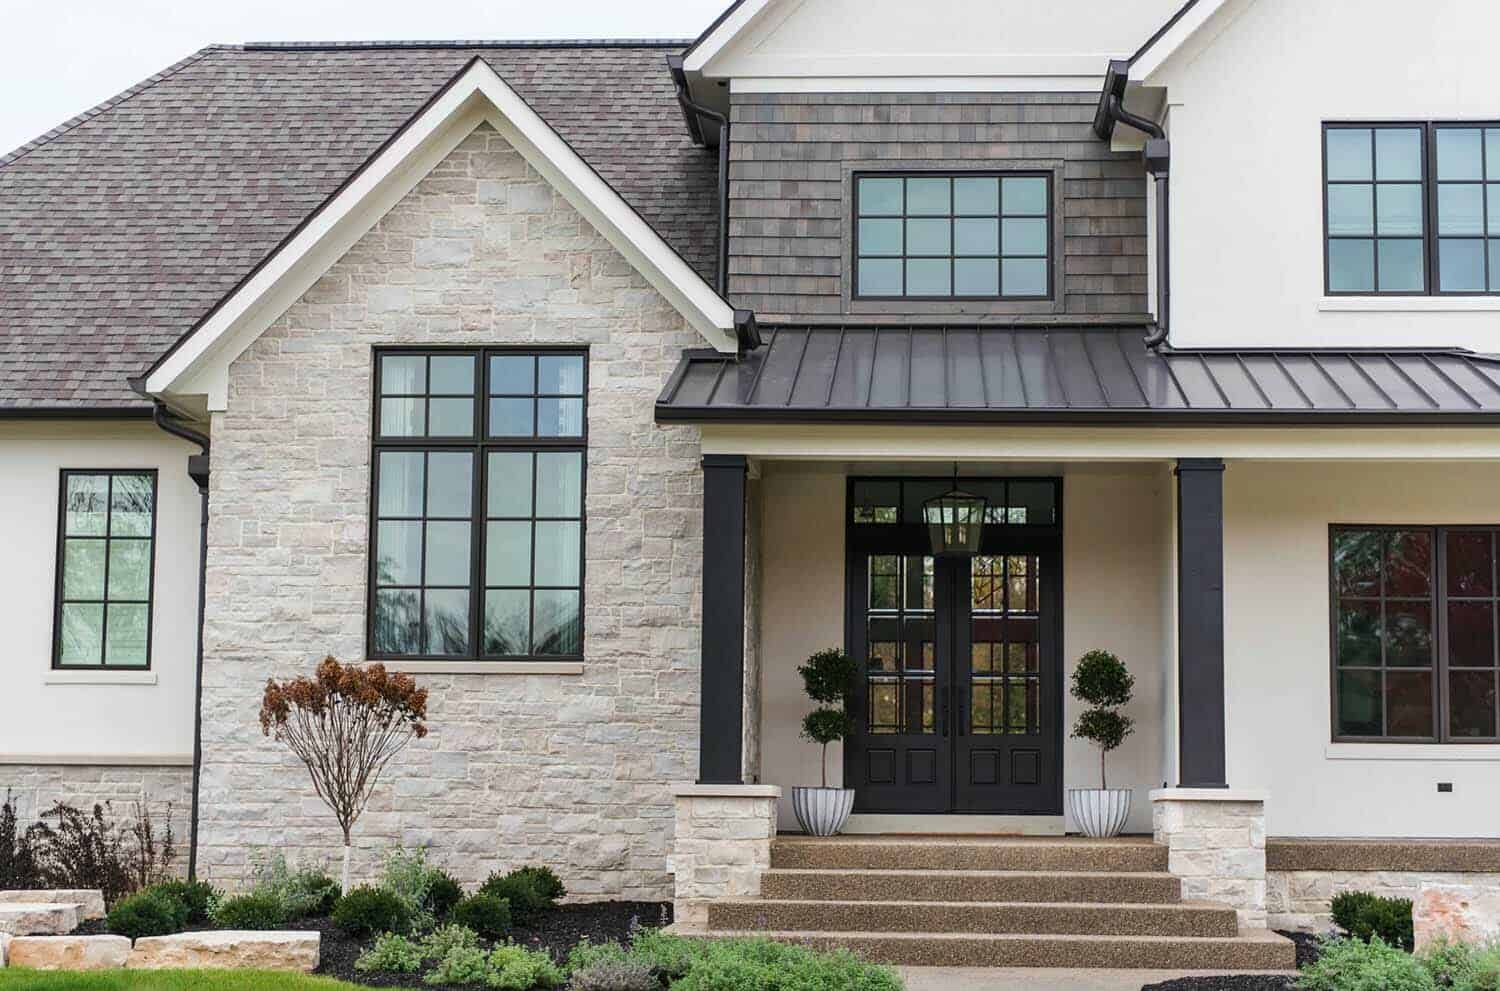 Traditional Meets Contemporary In This Refreshing Family